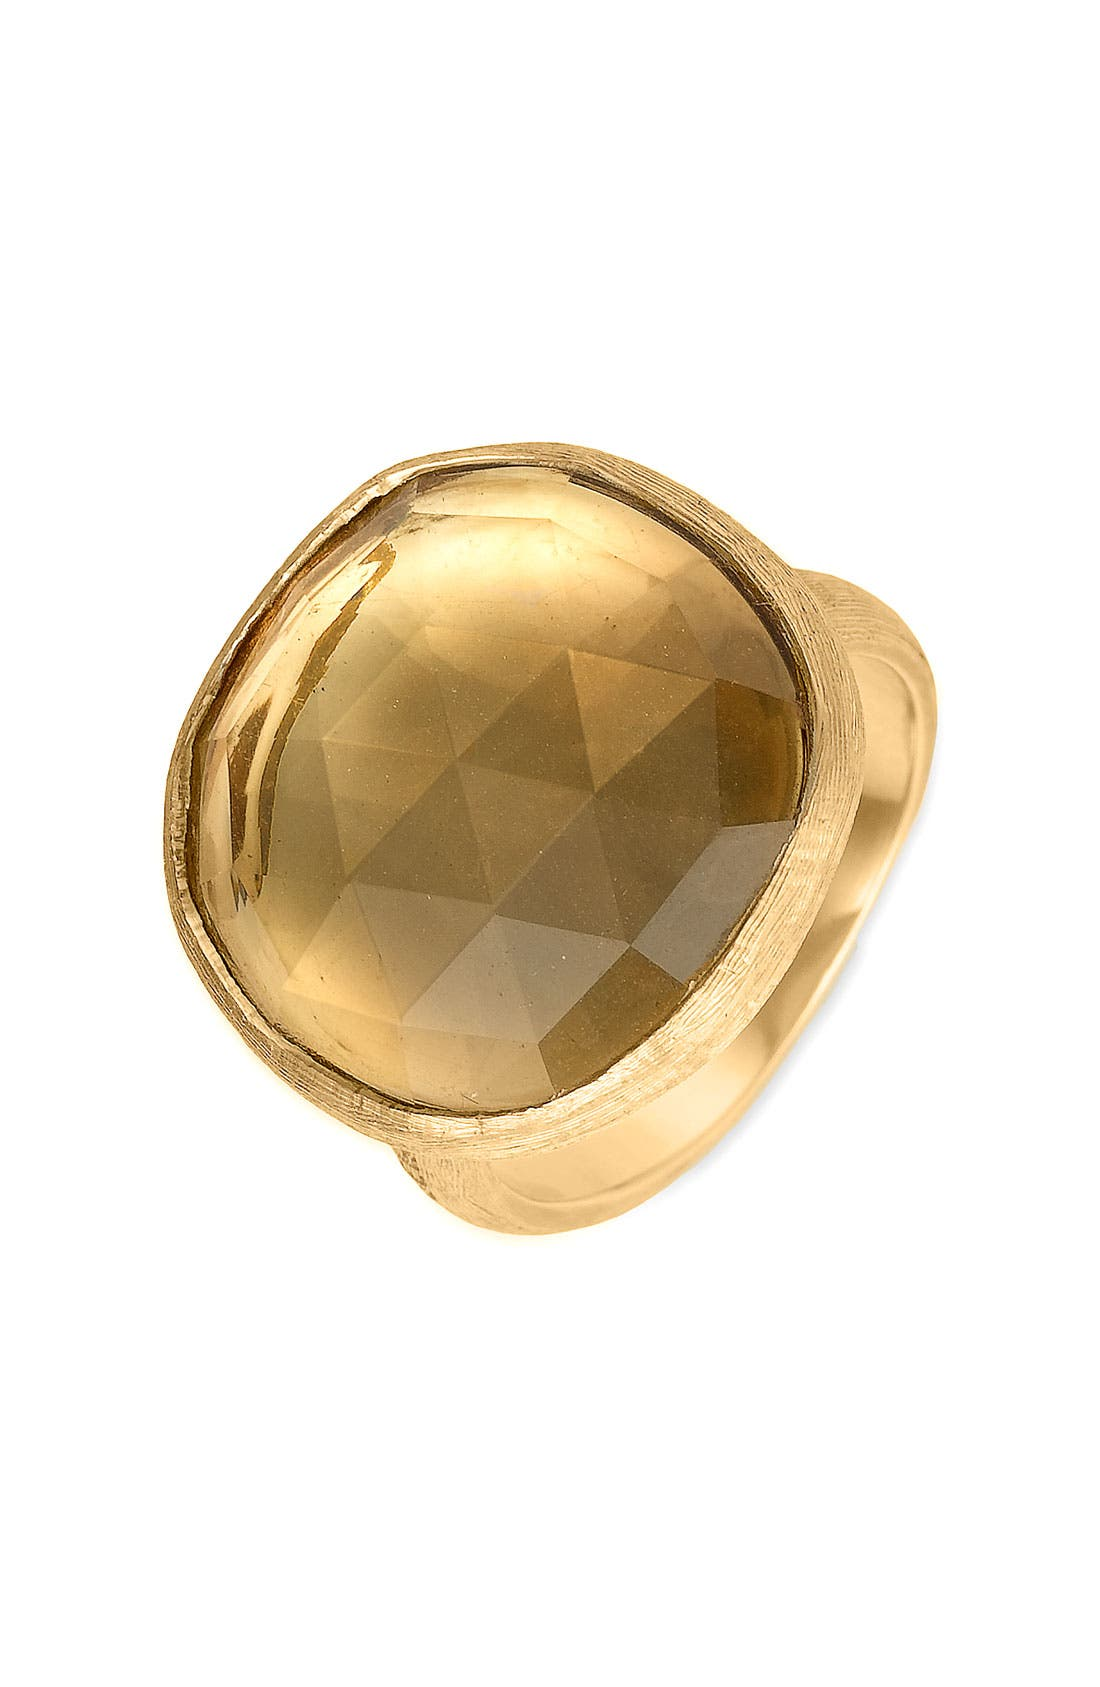 Alternate Image 1 Selected - Marco Bicego 'Jaipur' Large Citrine Ring